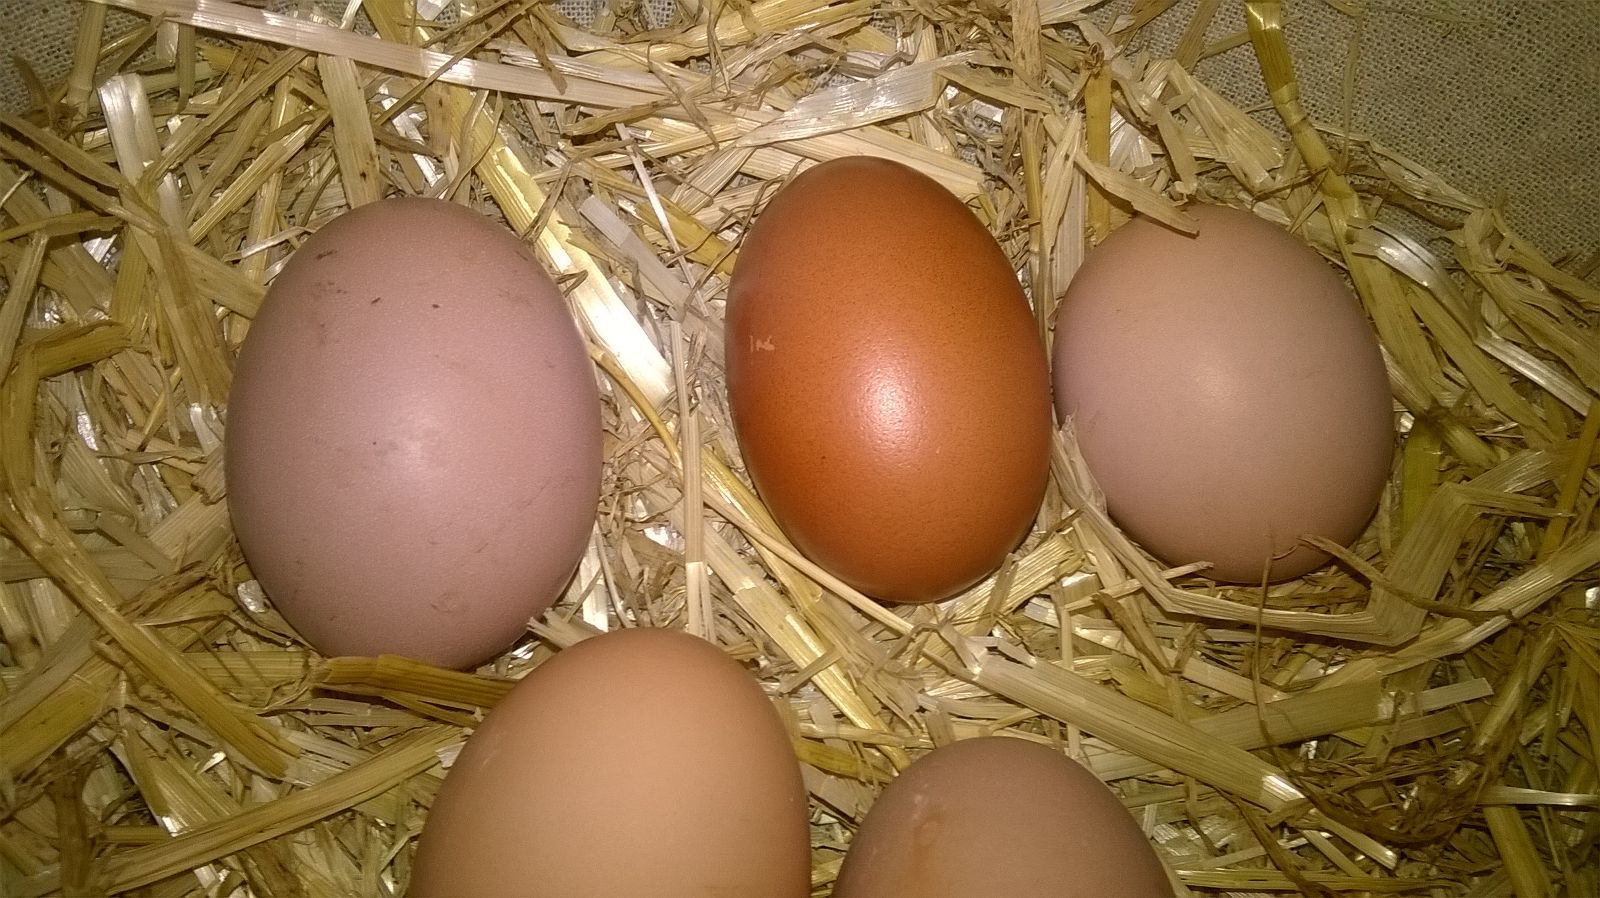 hi everyone this dark egg is the first from gertrude my copper black maran the round one is lulus my rhode island red the others are from meg my light sussex and hattie my silver sussex made up good luck